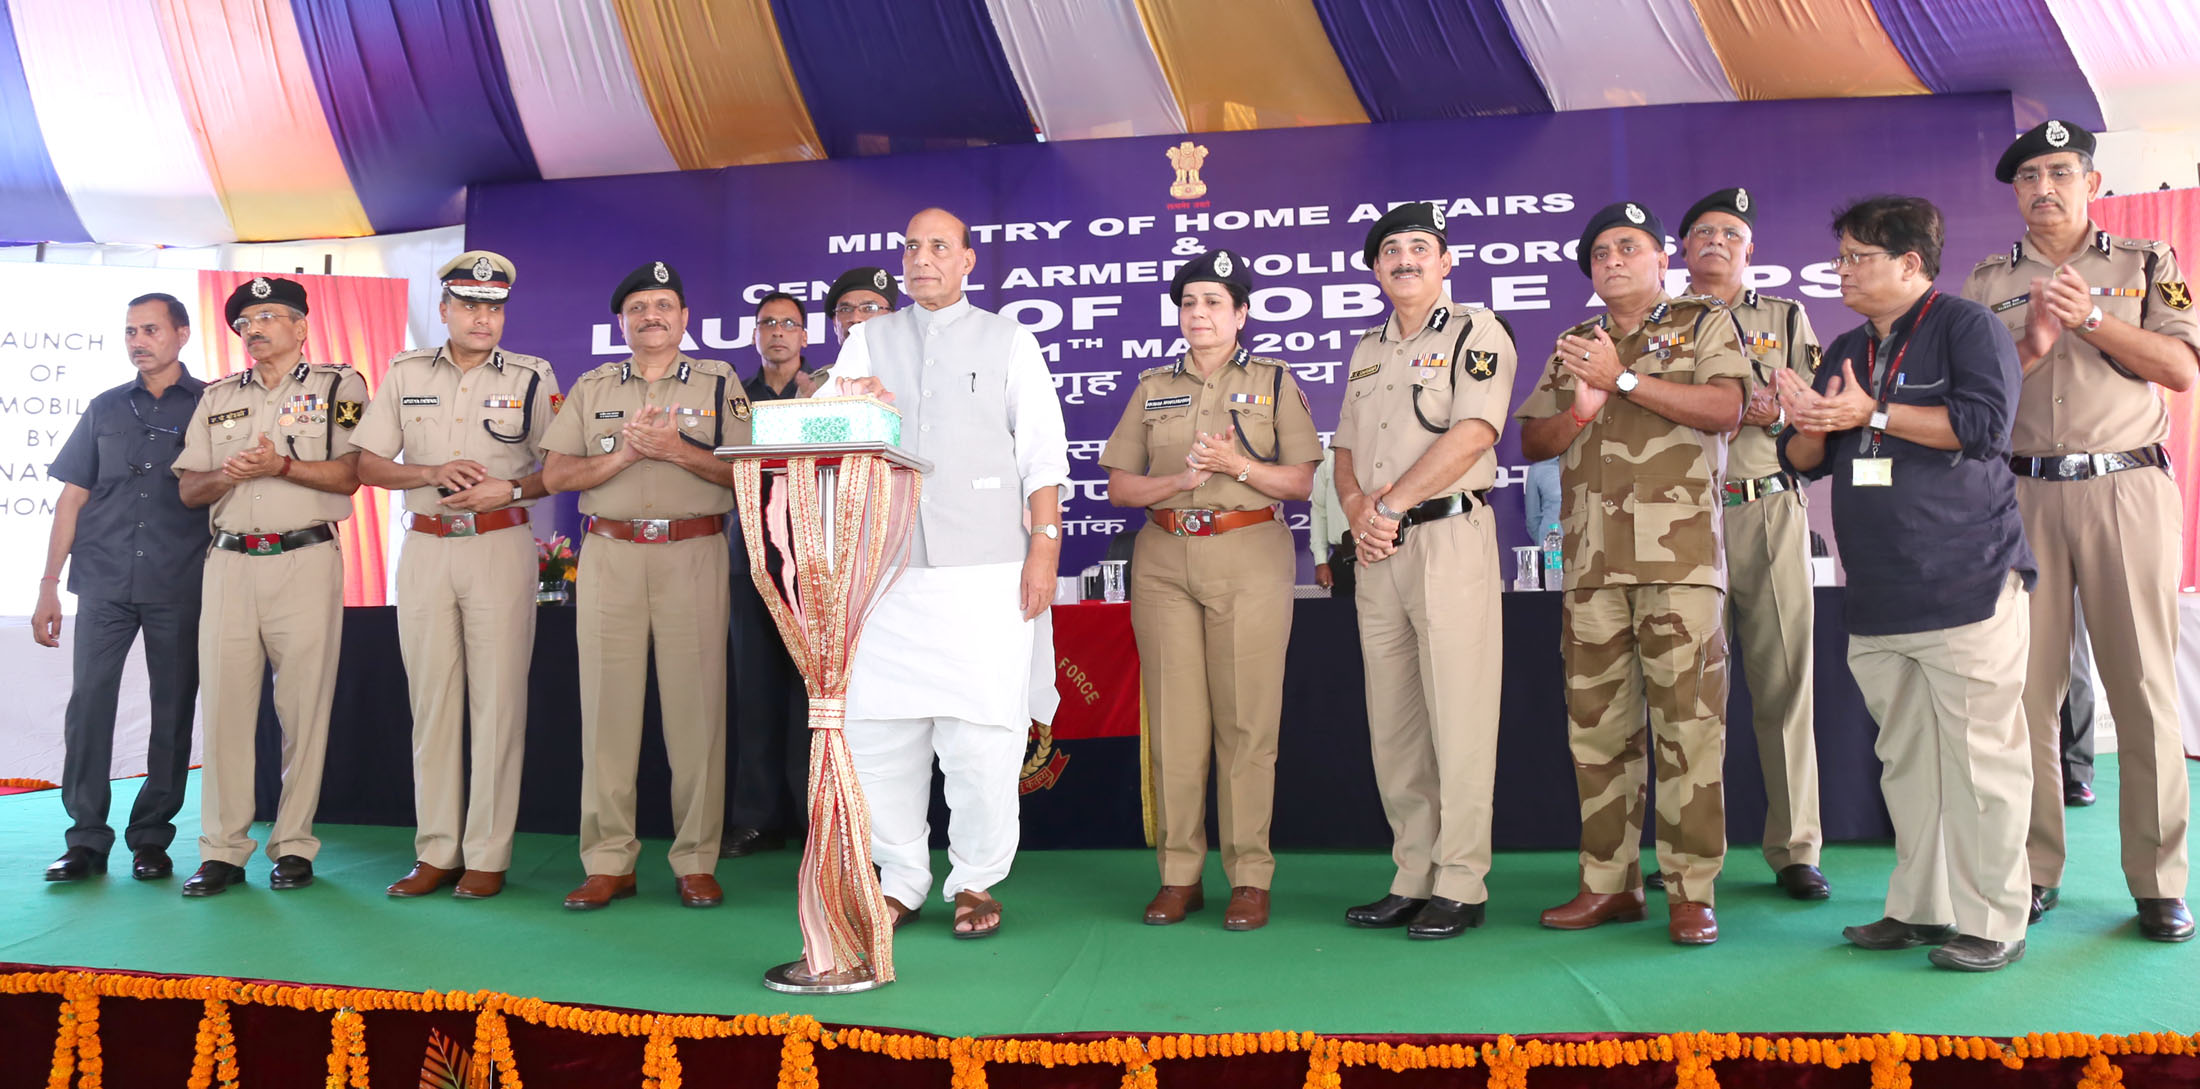 Shri Rajnath Singh launching the MHA Mobile Application (Grievances Redressal App for CAPFs)